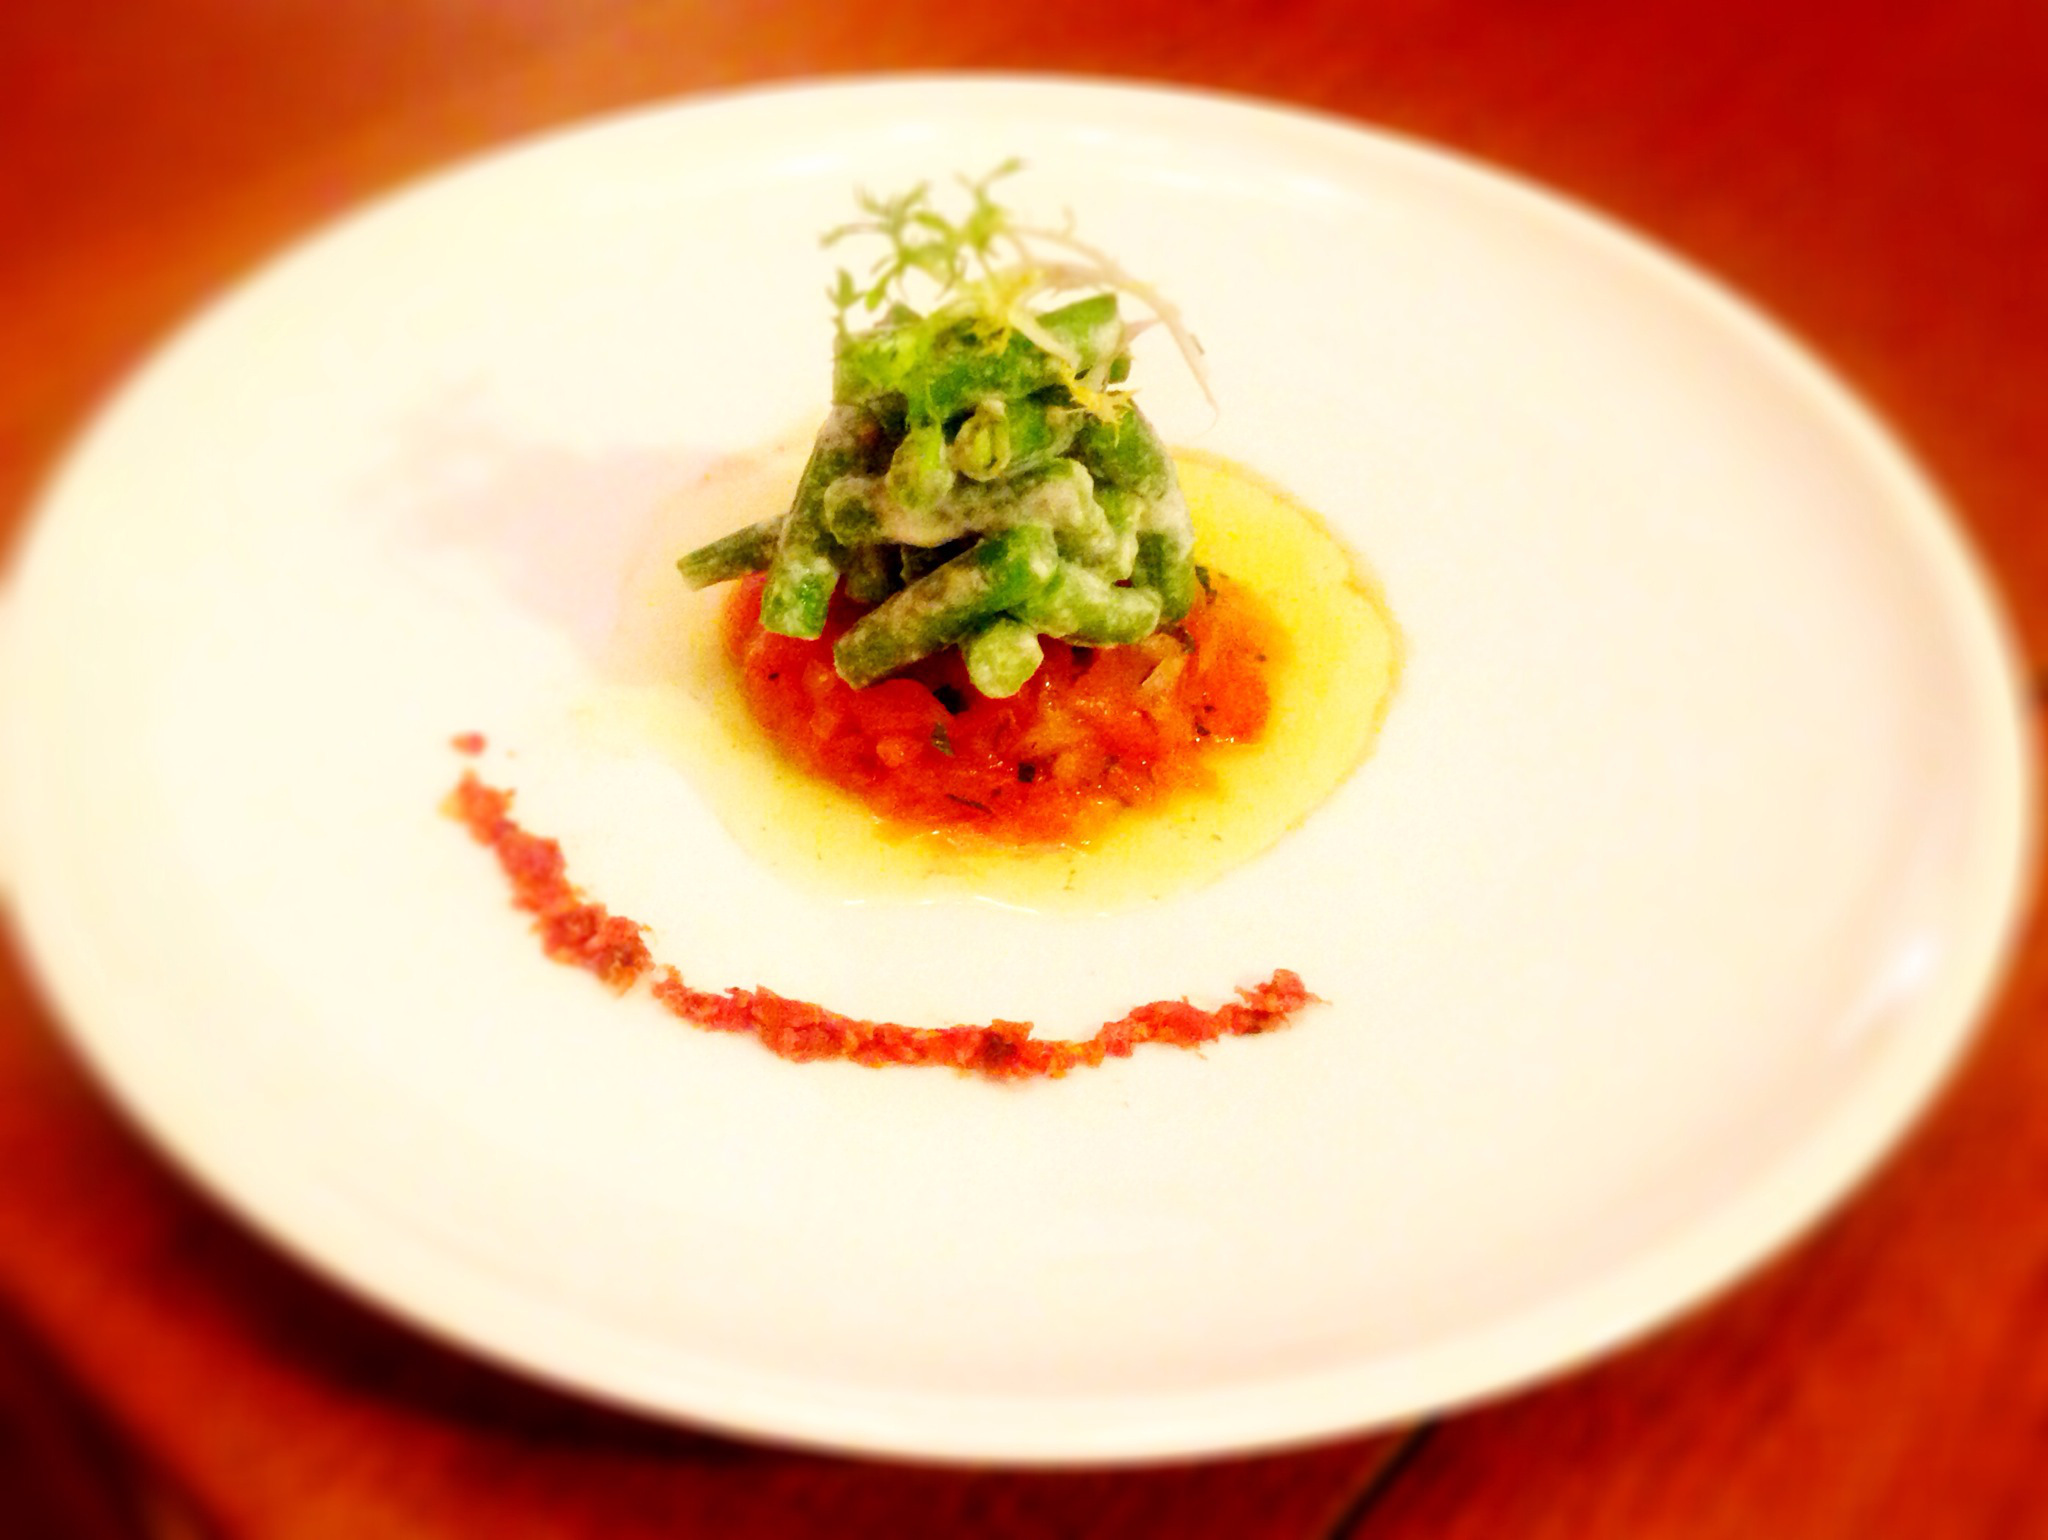 Salad of Haricots Verts, Tomato Tartare, and Chive Oil